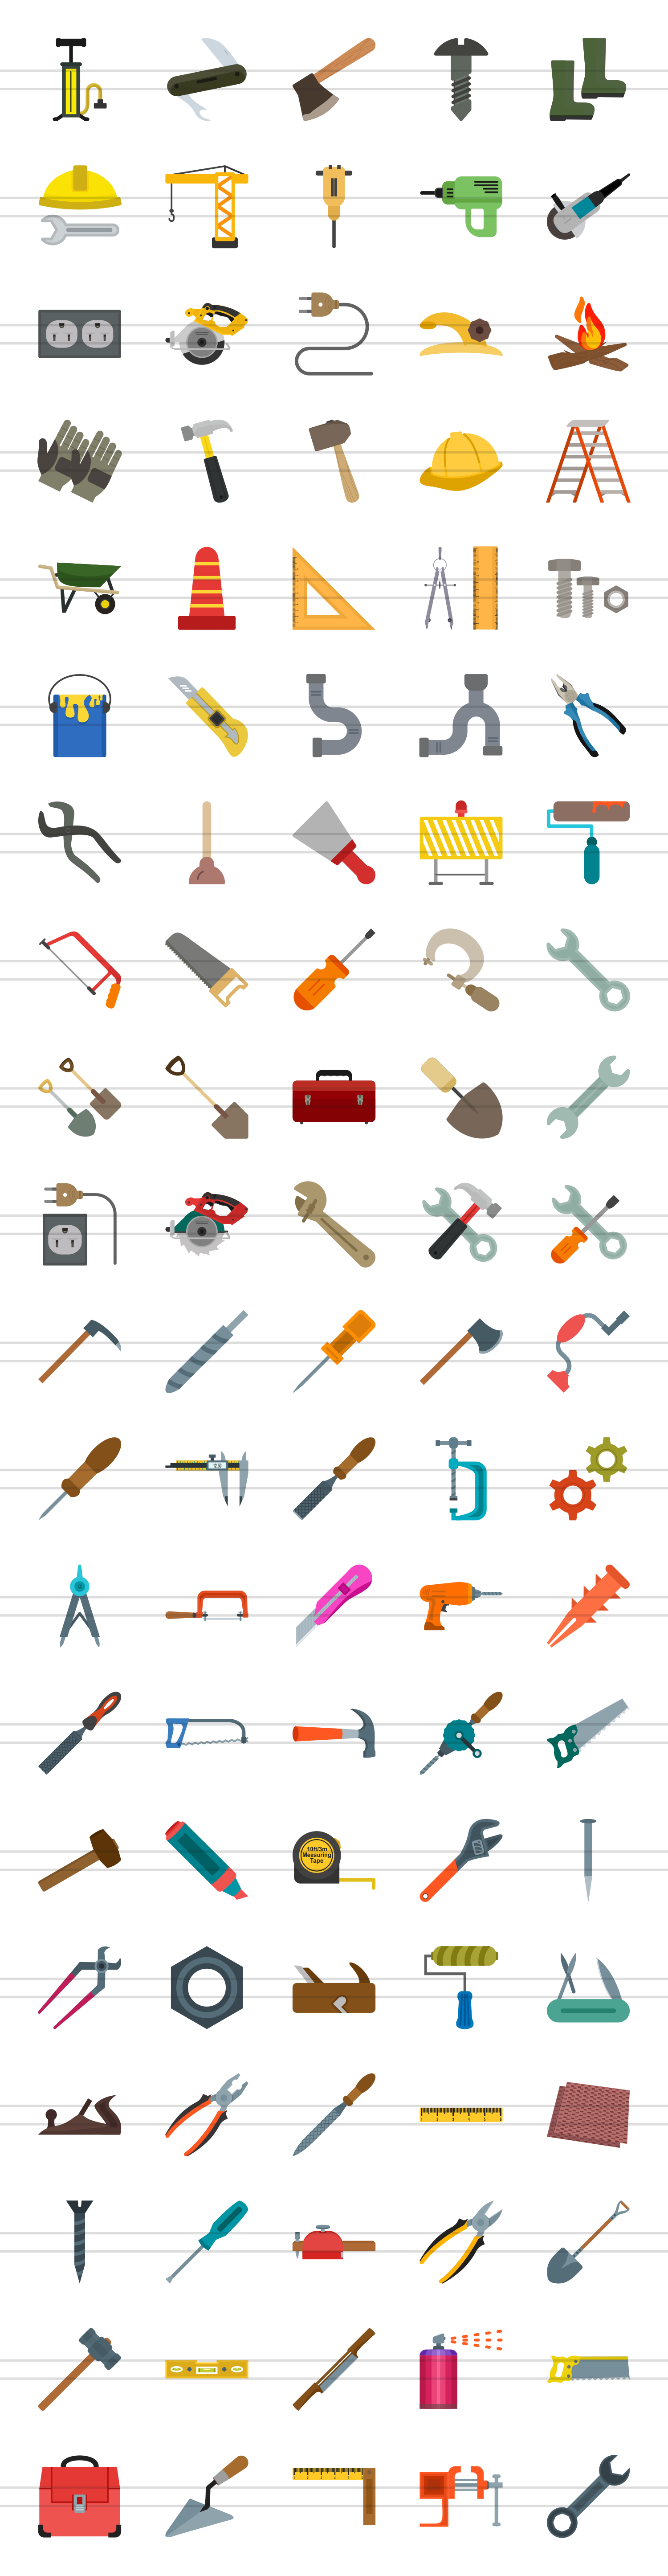 100 Tools Flat Icons example image 2